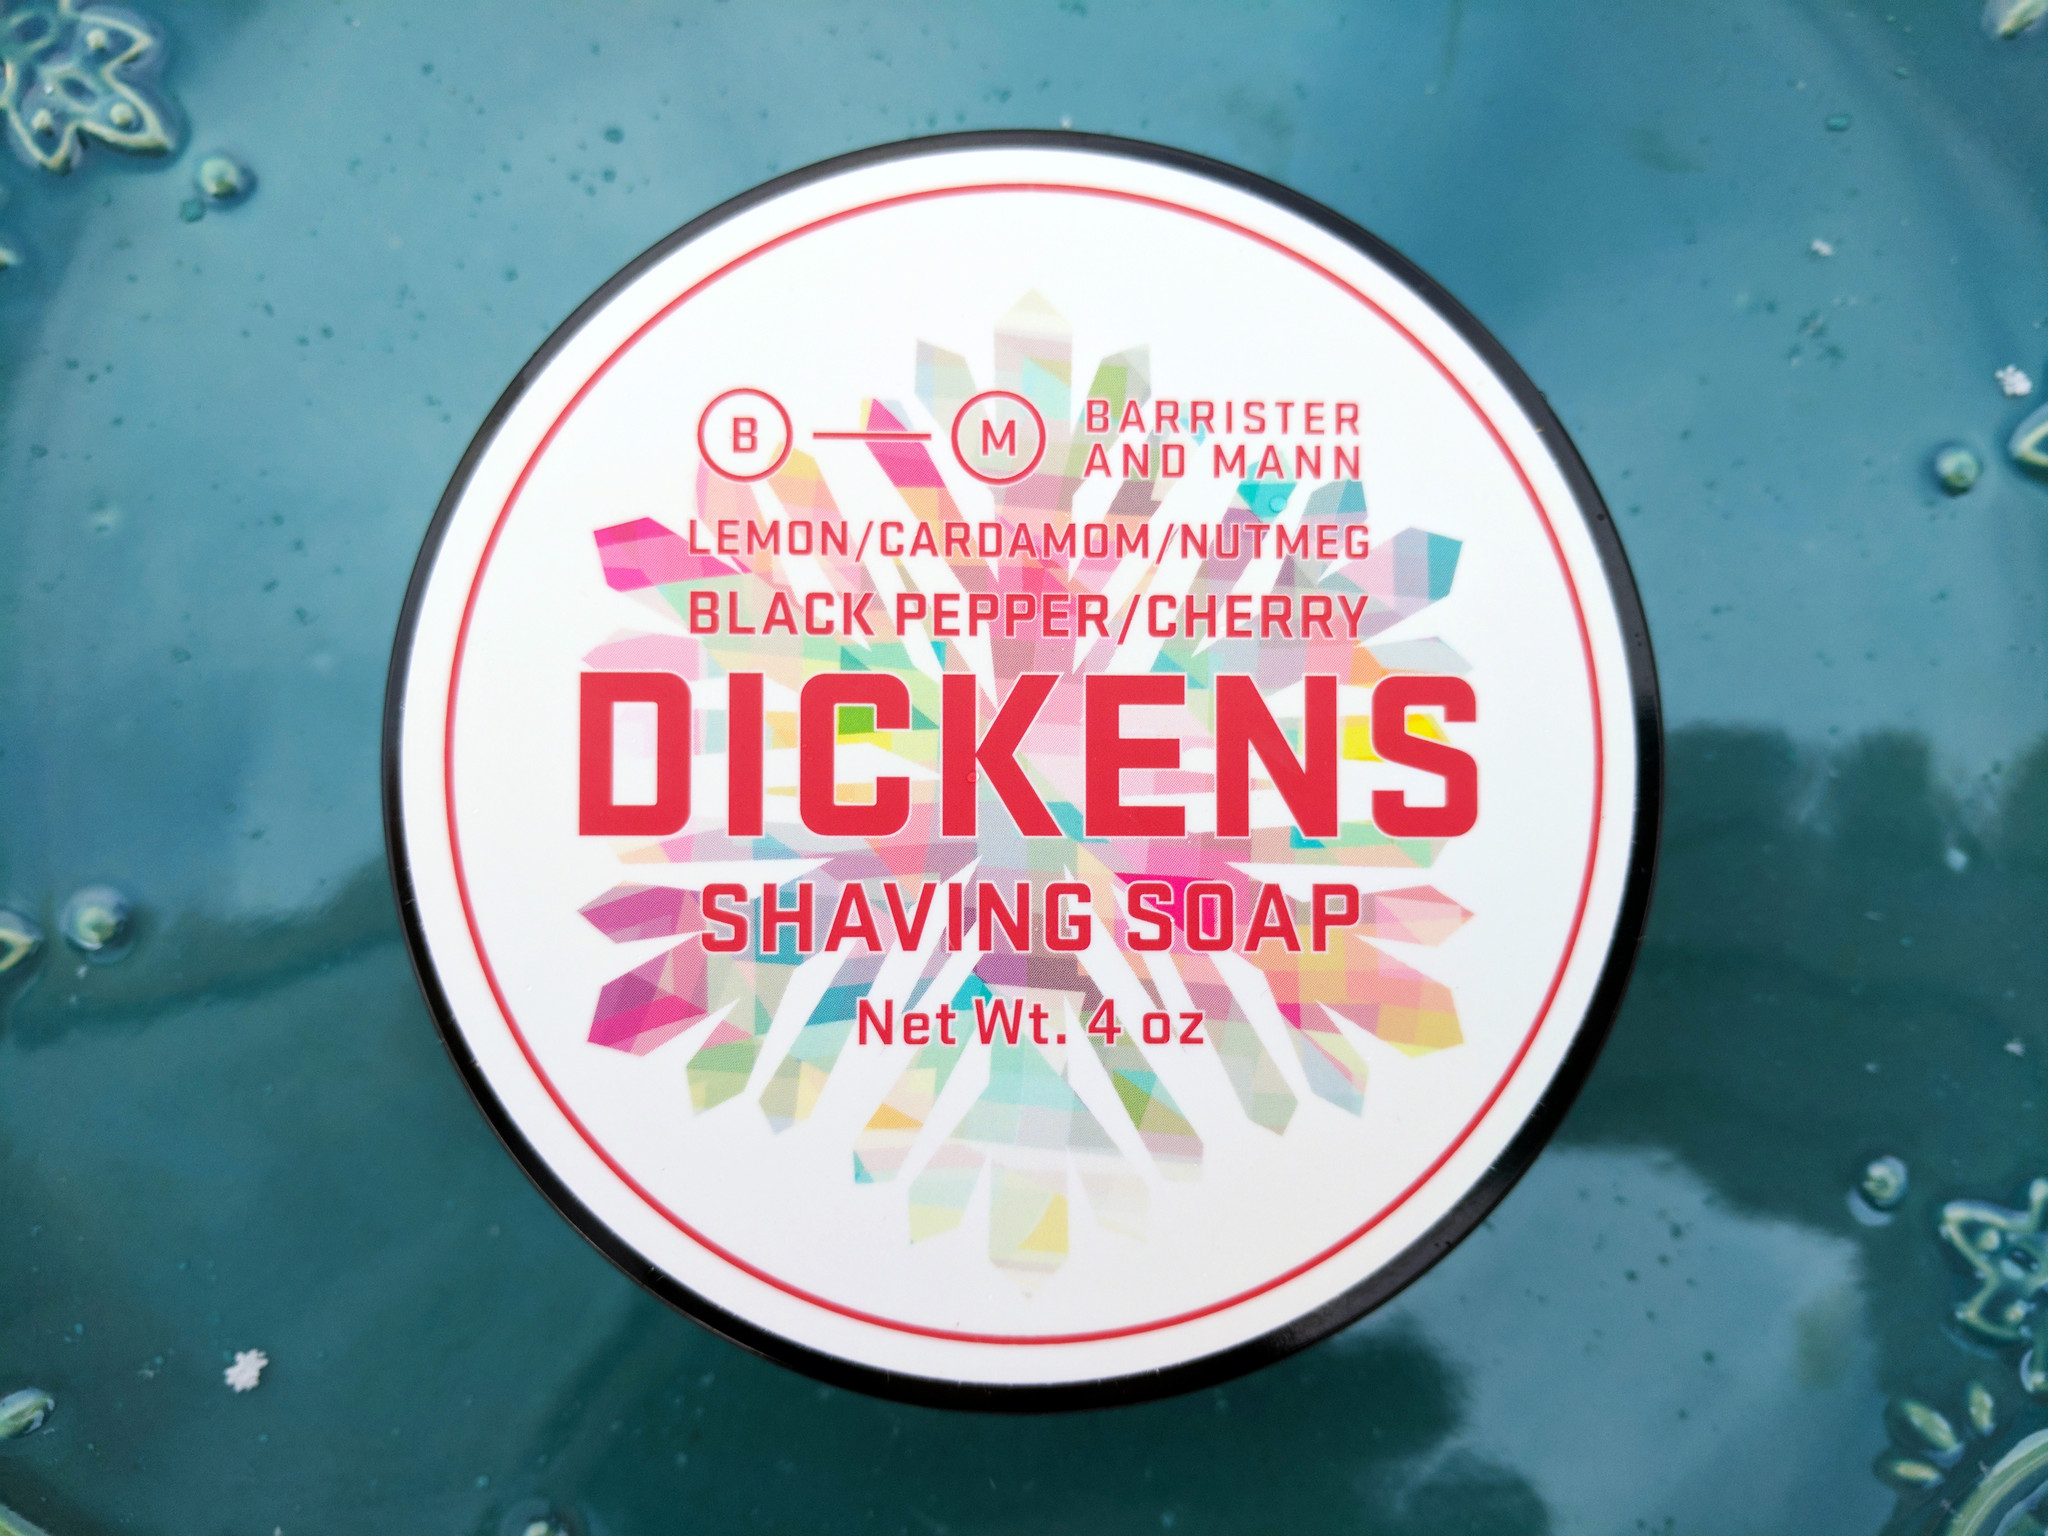 Barrister and Mann - Dickens - Soap image